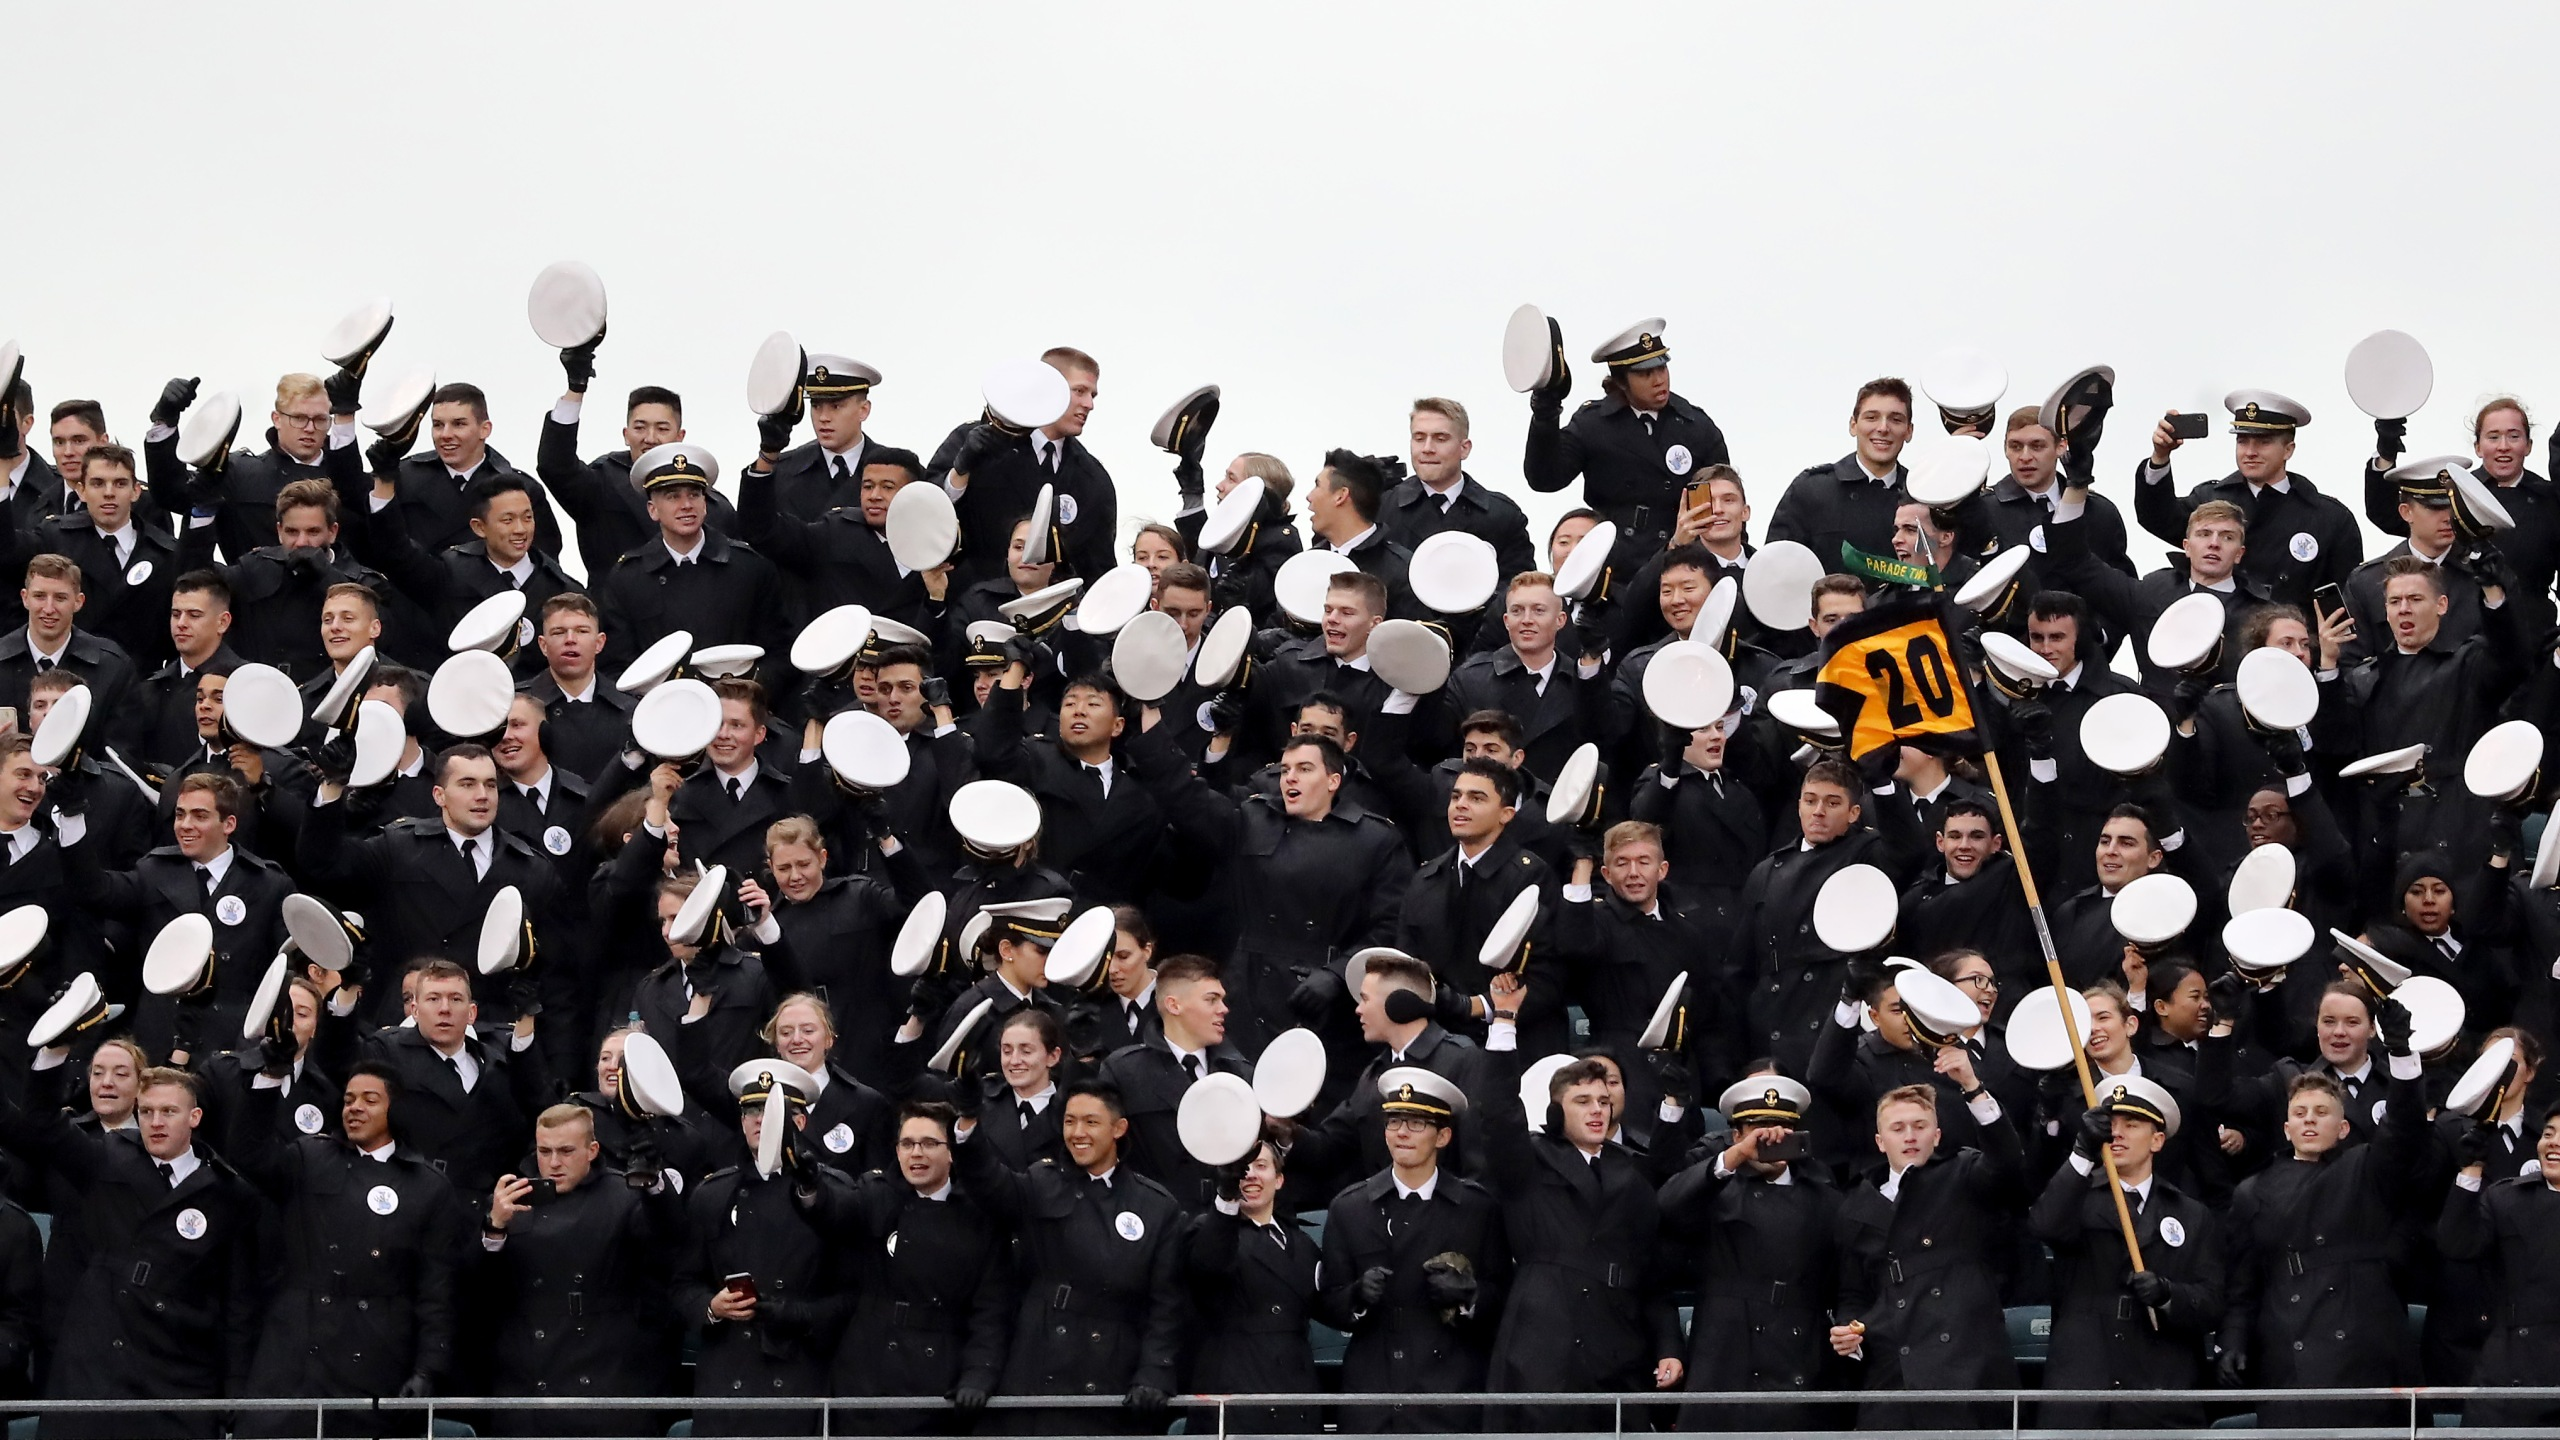 The Navy Midshipmen celebrate during the game against the Army Black Knights at Lincoln Financial Field on Dec. 14, 2019, in Philadelphia, Pennsylvania. (Credit: Elsa/Getty Images)